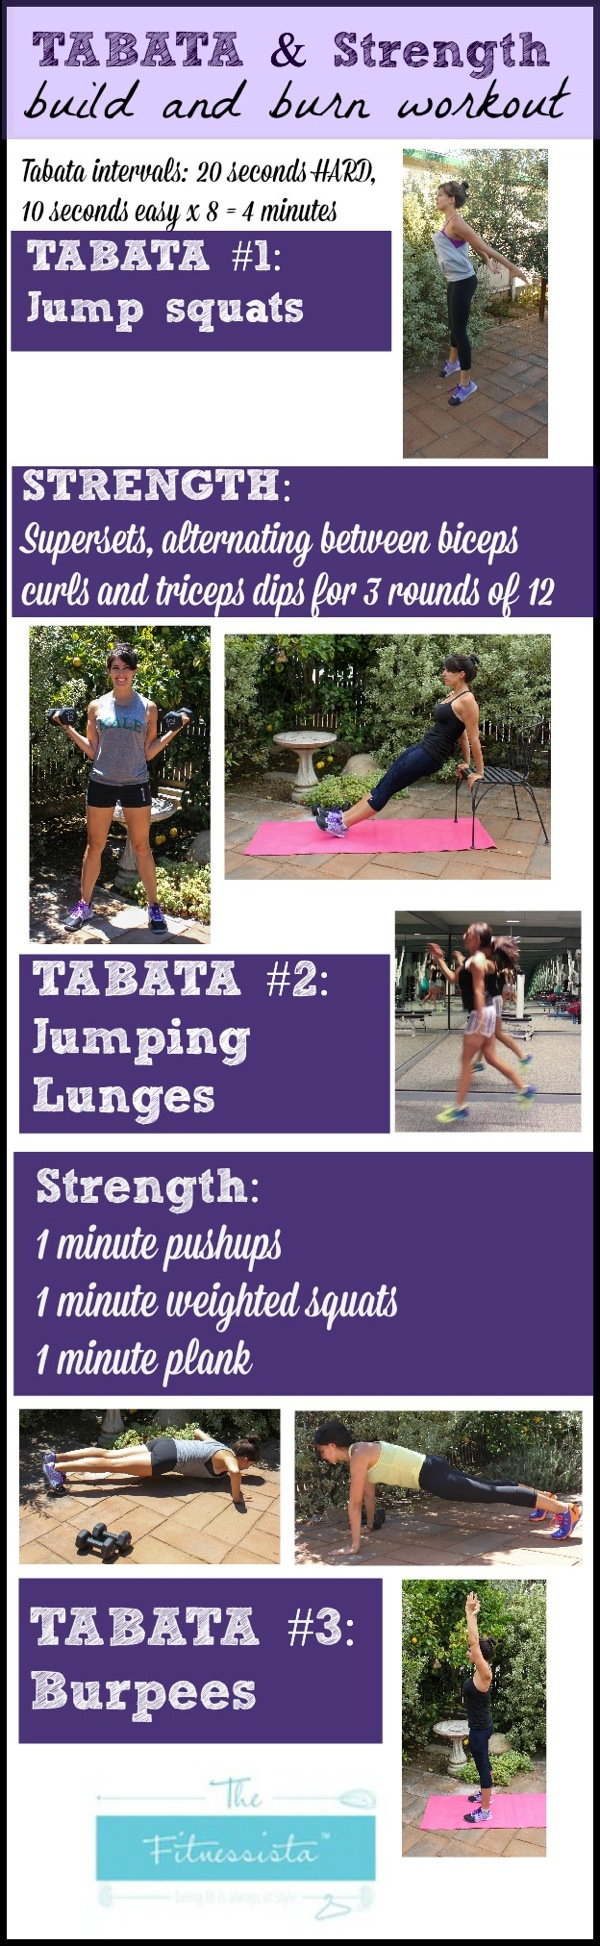 Tabata and strength workout